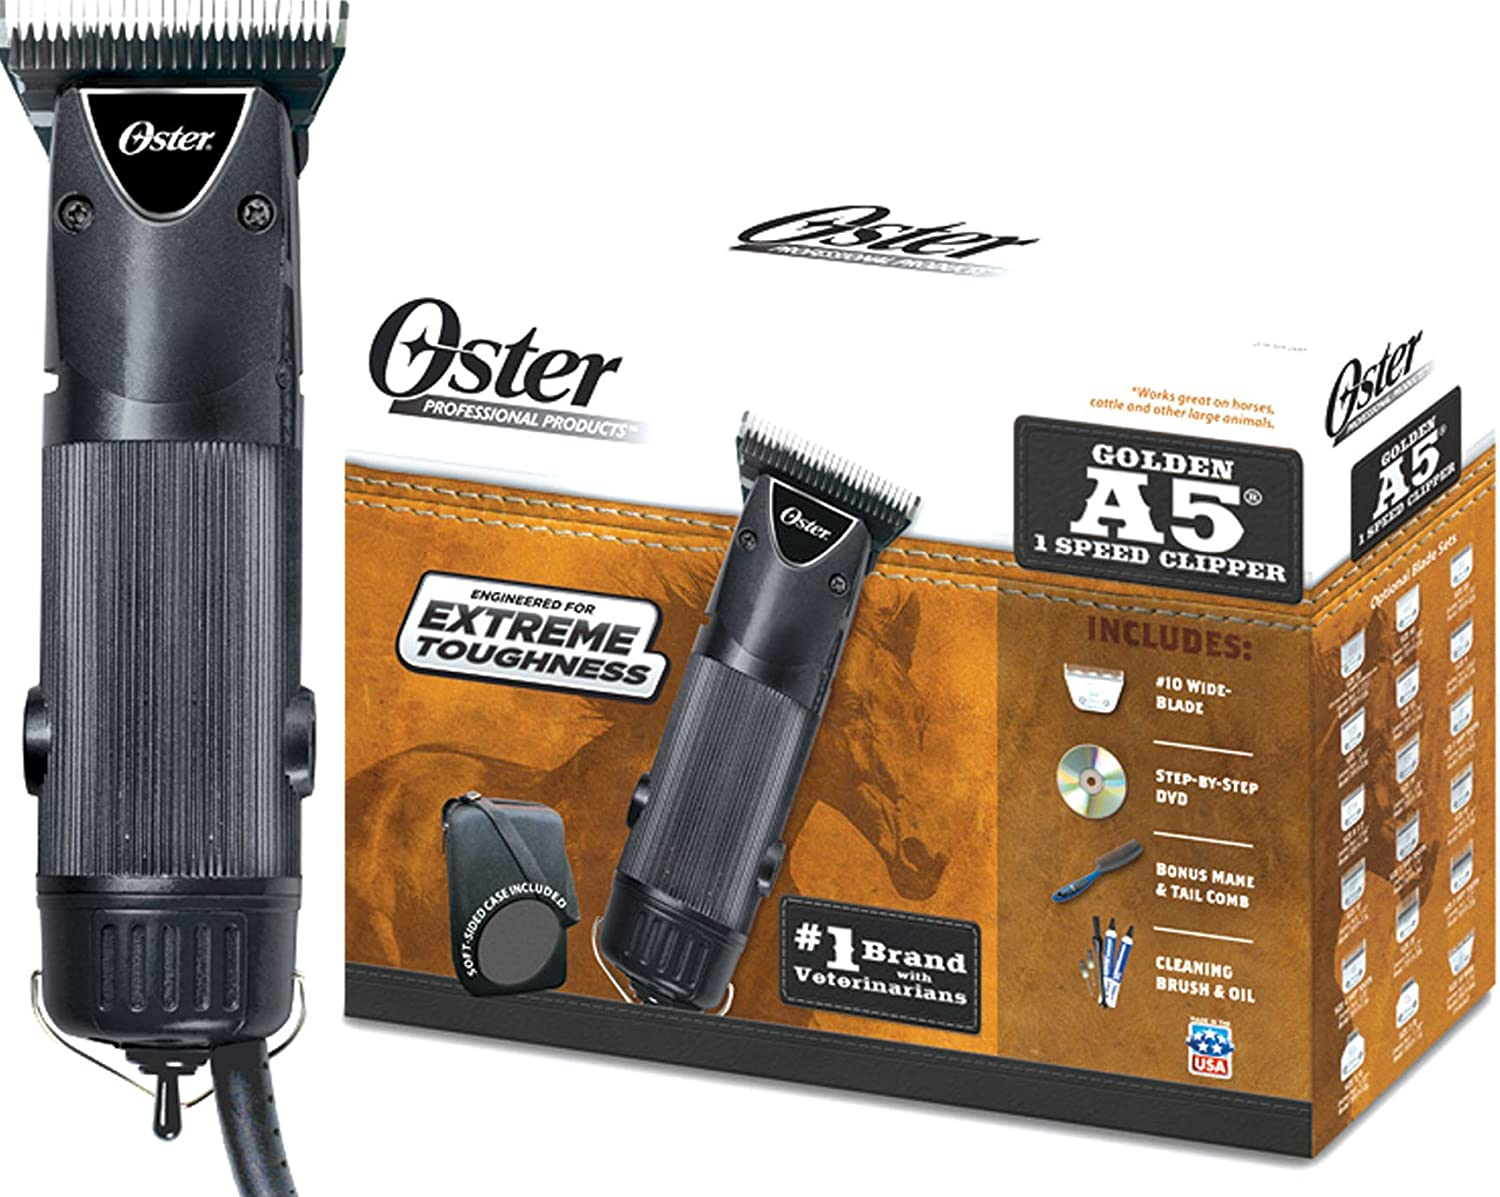 Oster 078705-000 Equine Care Series Golden A5 Single Speed Clipper, Indigo 118627